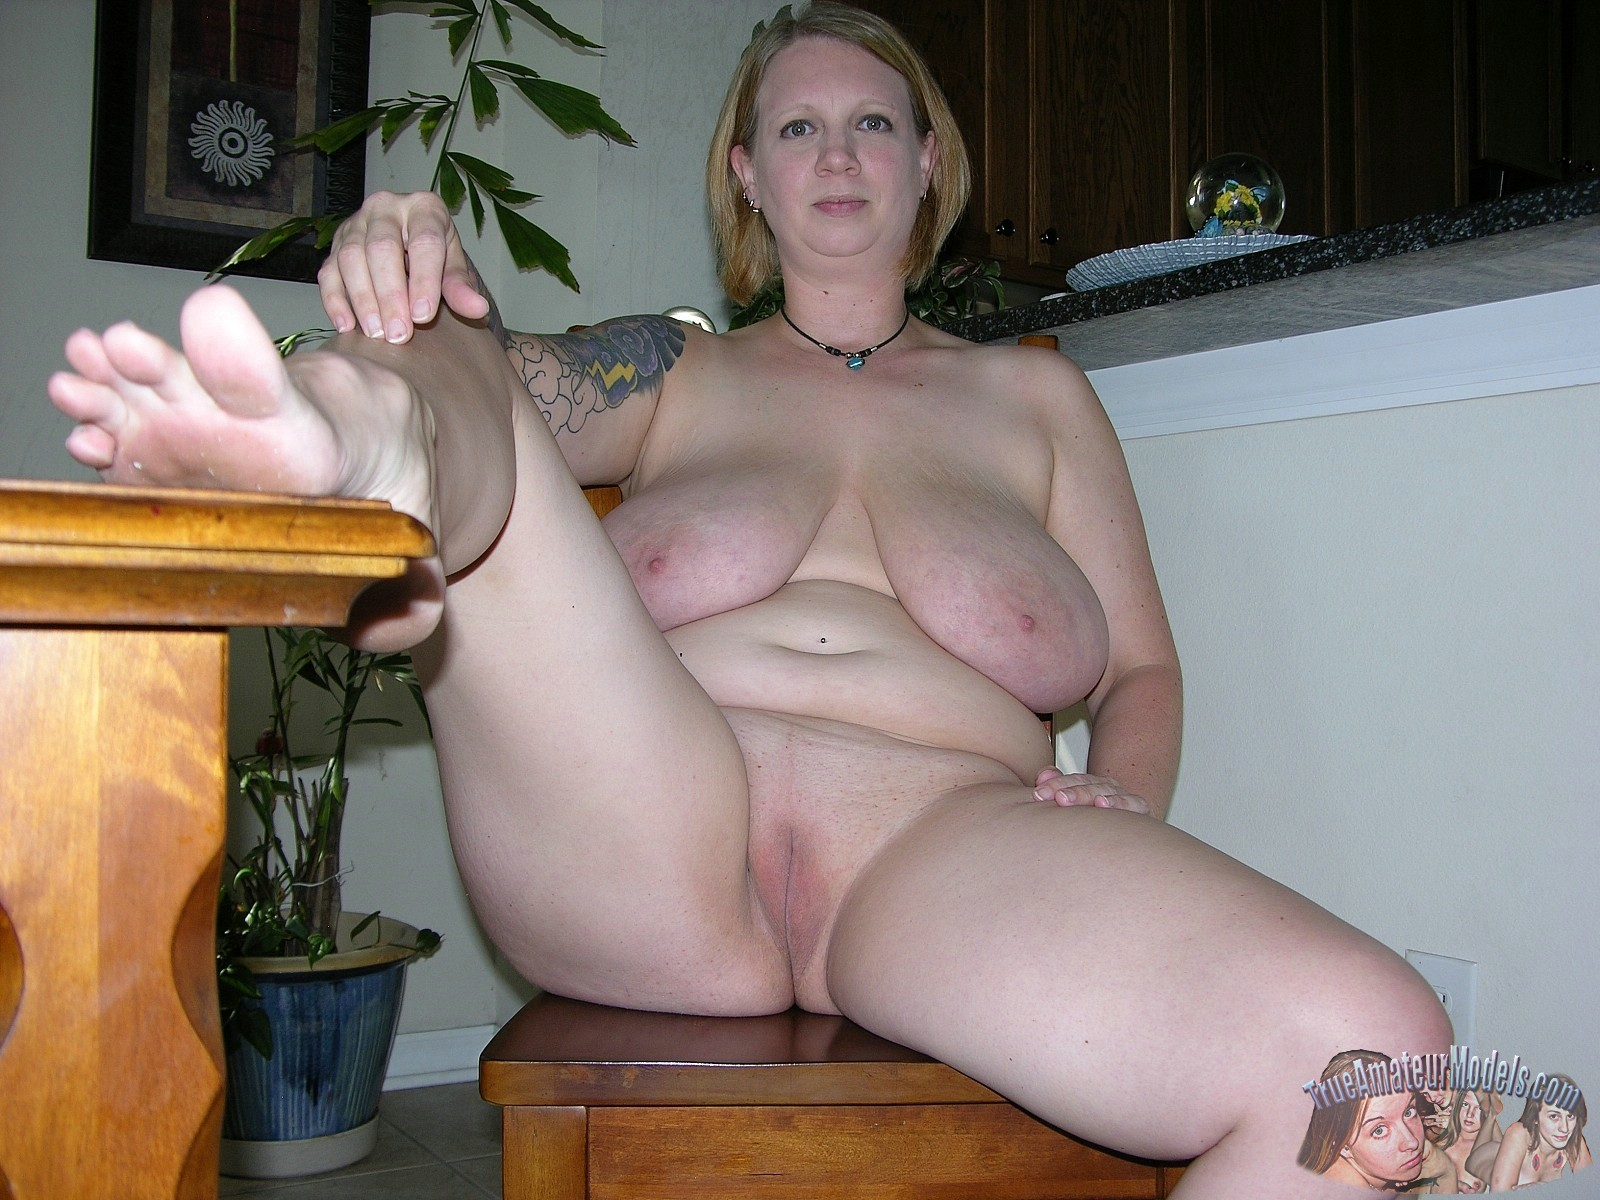 Milfs streaming videos free